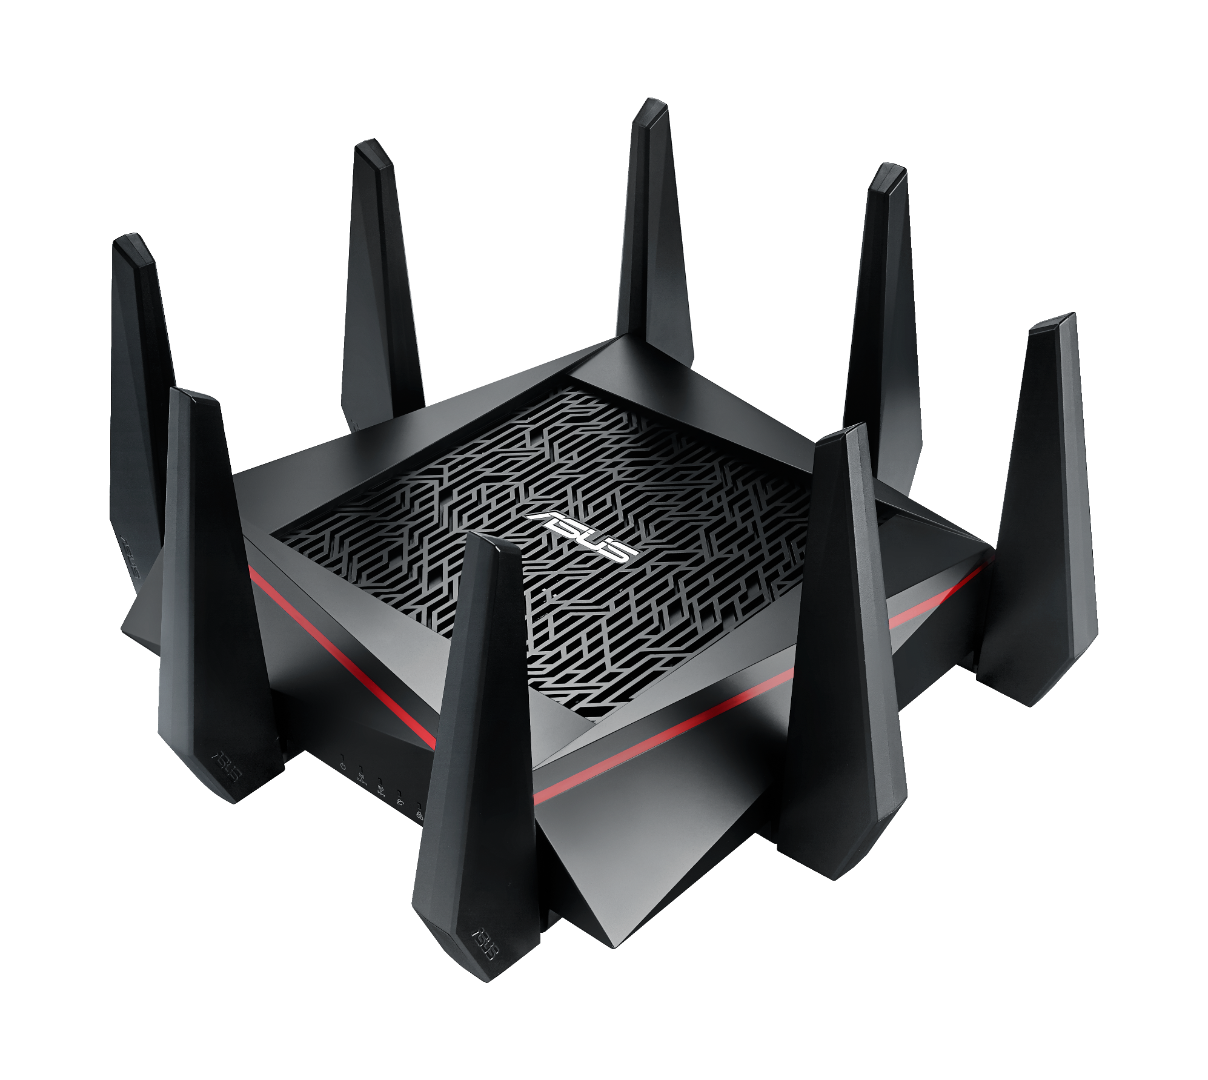 ASUS RT-AC5300 router press picture courtesy of ASUS